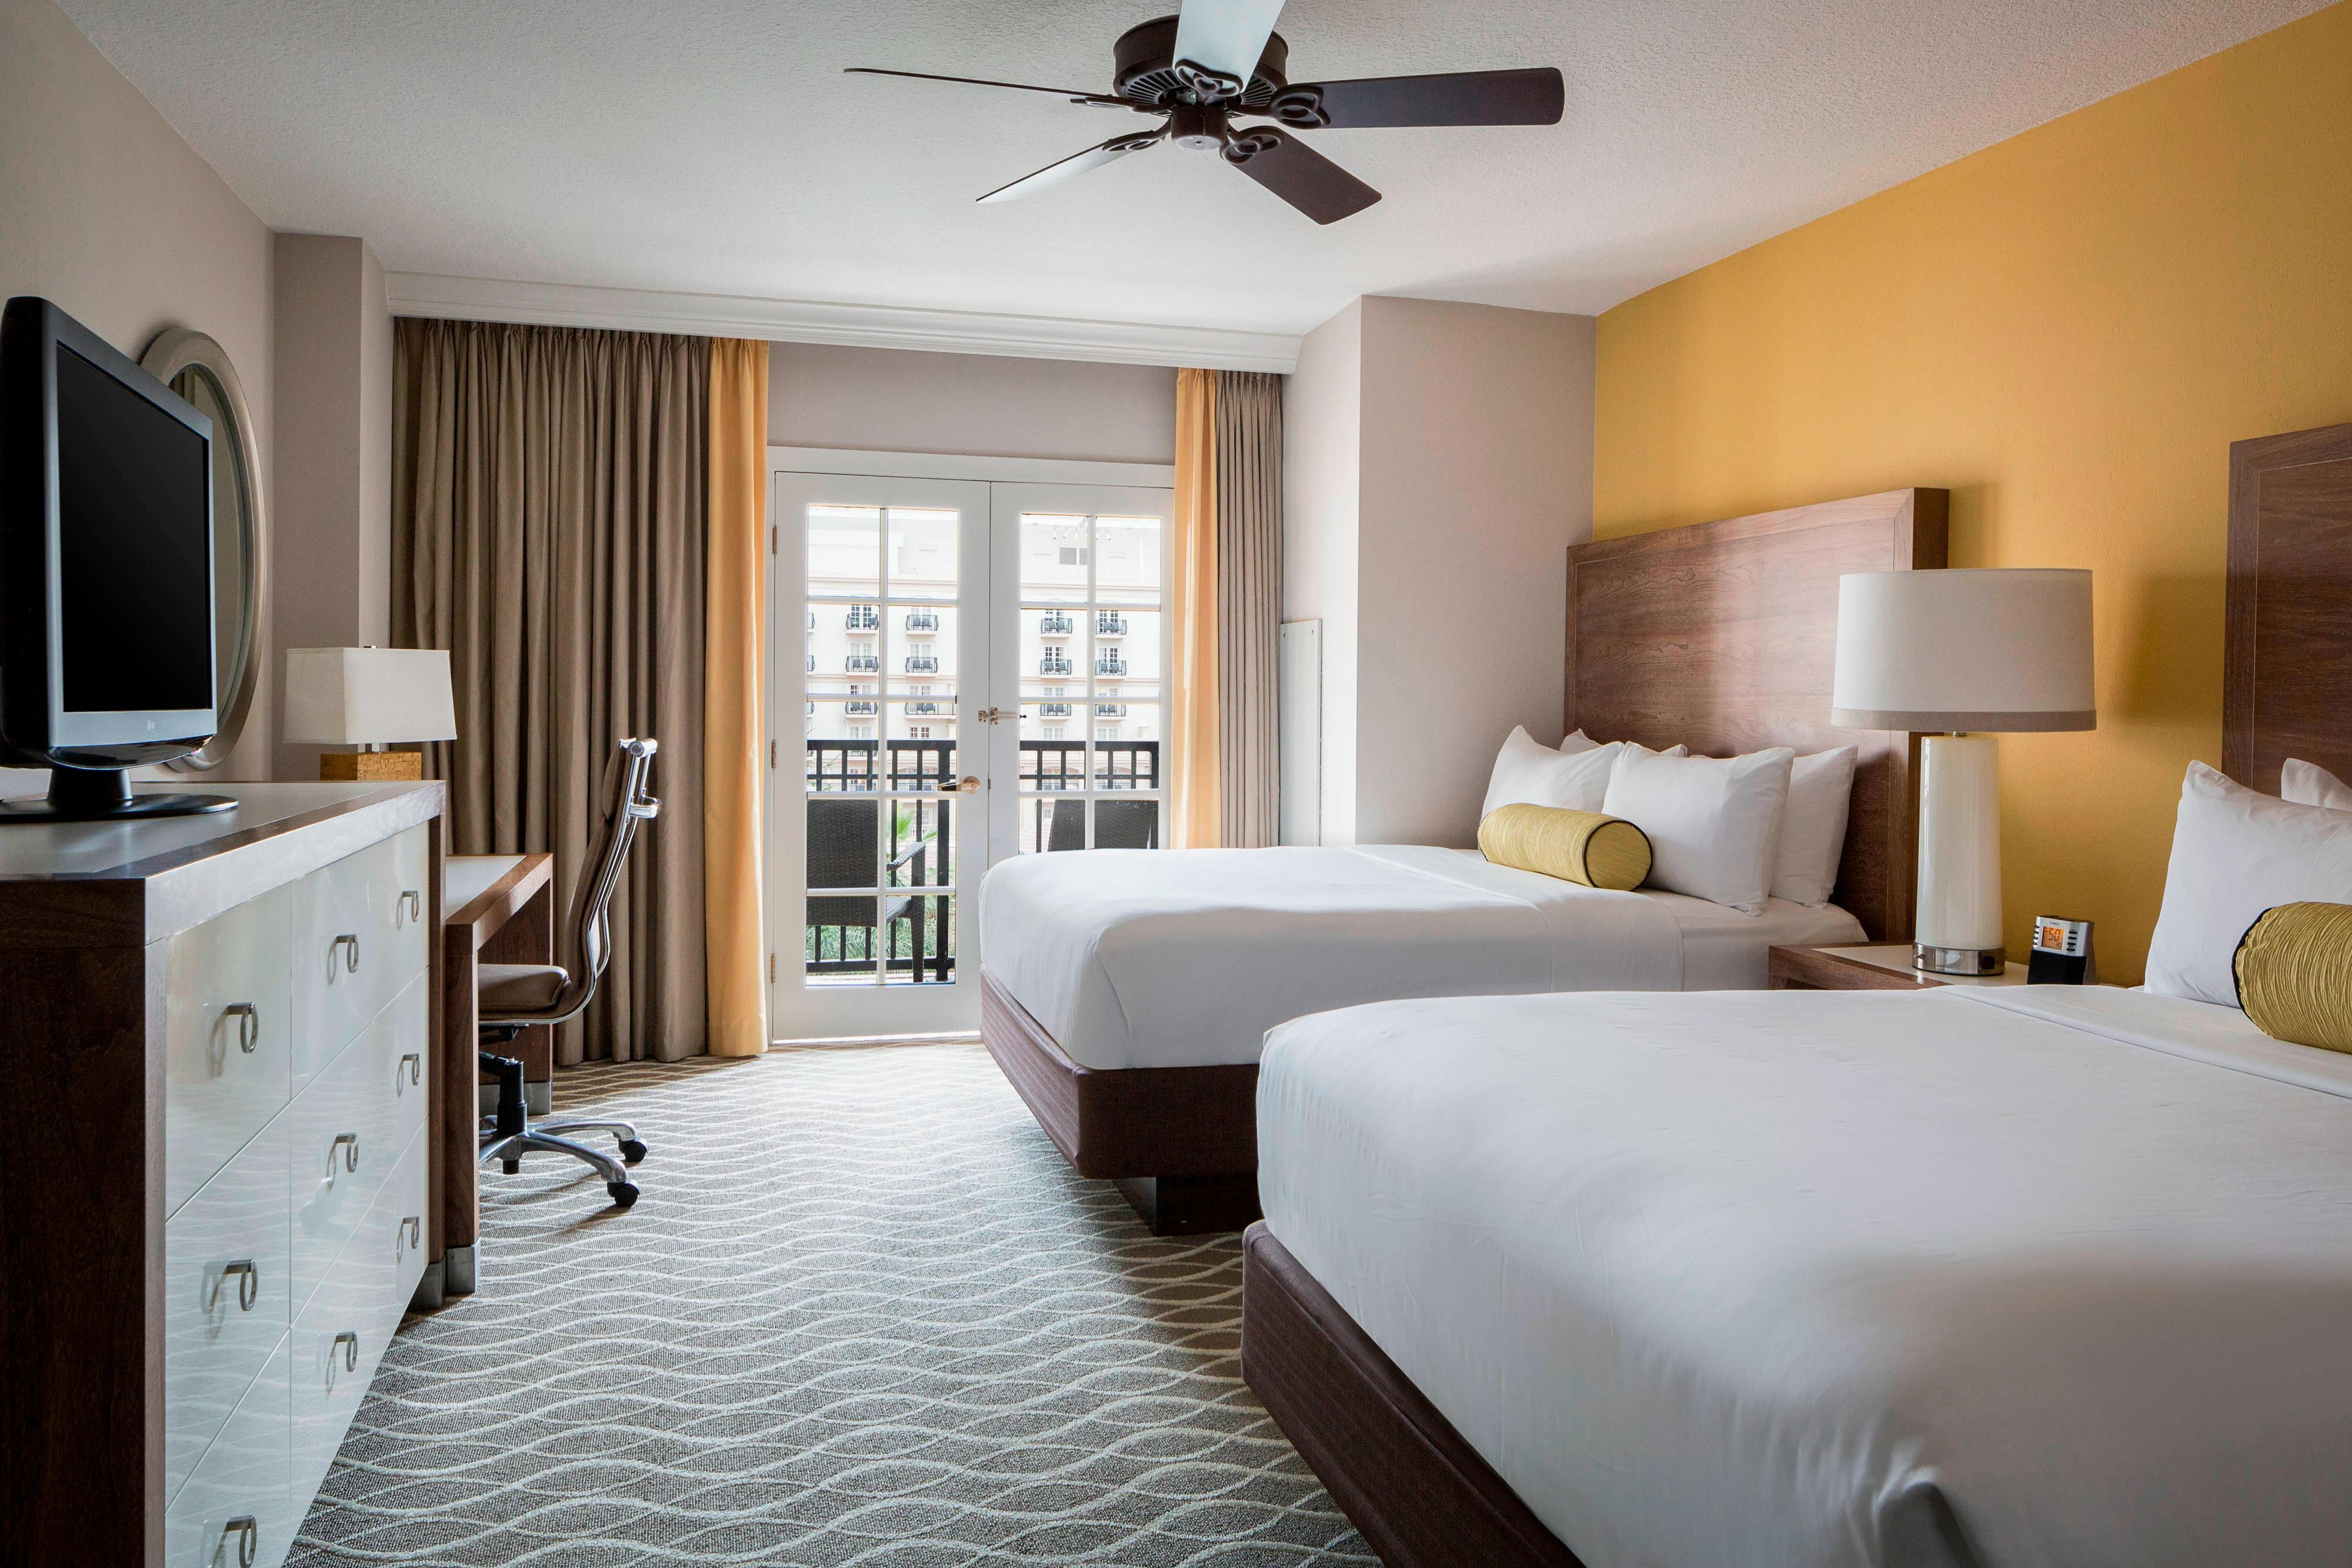 Rooms: Hotel Rooms And Suites In Kissimmee